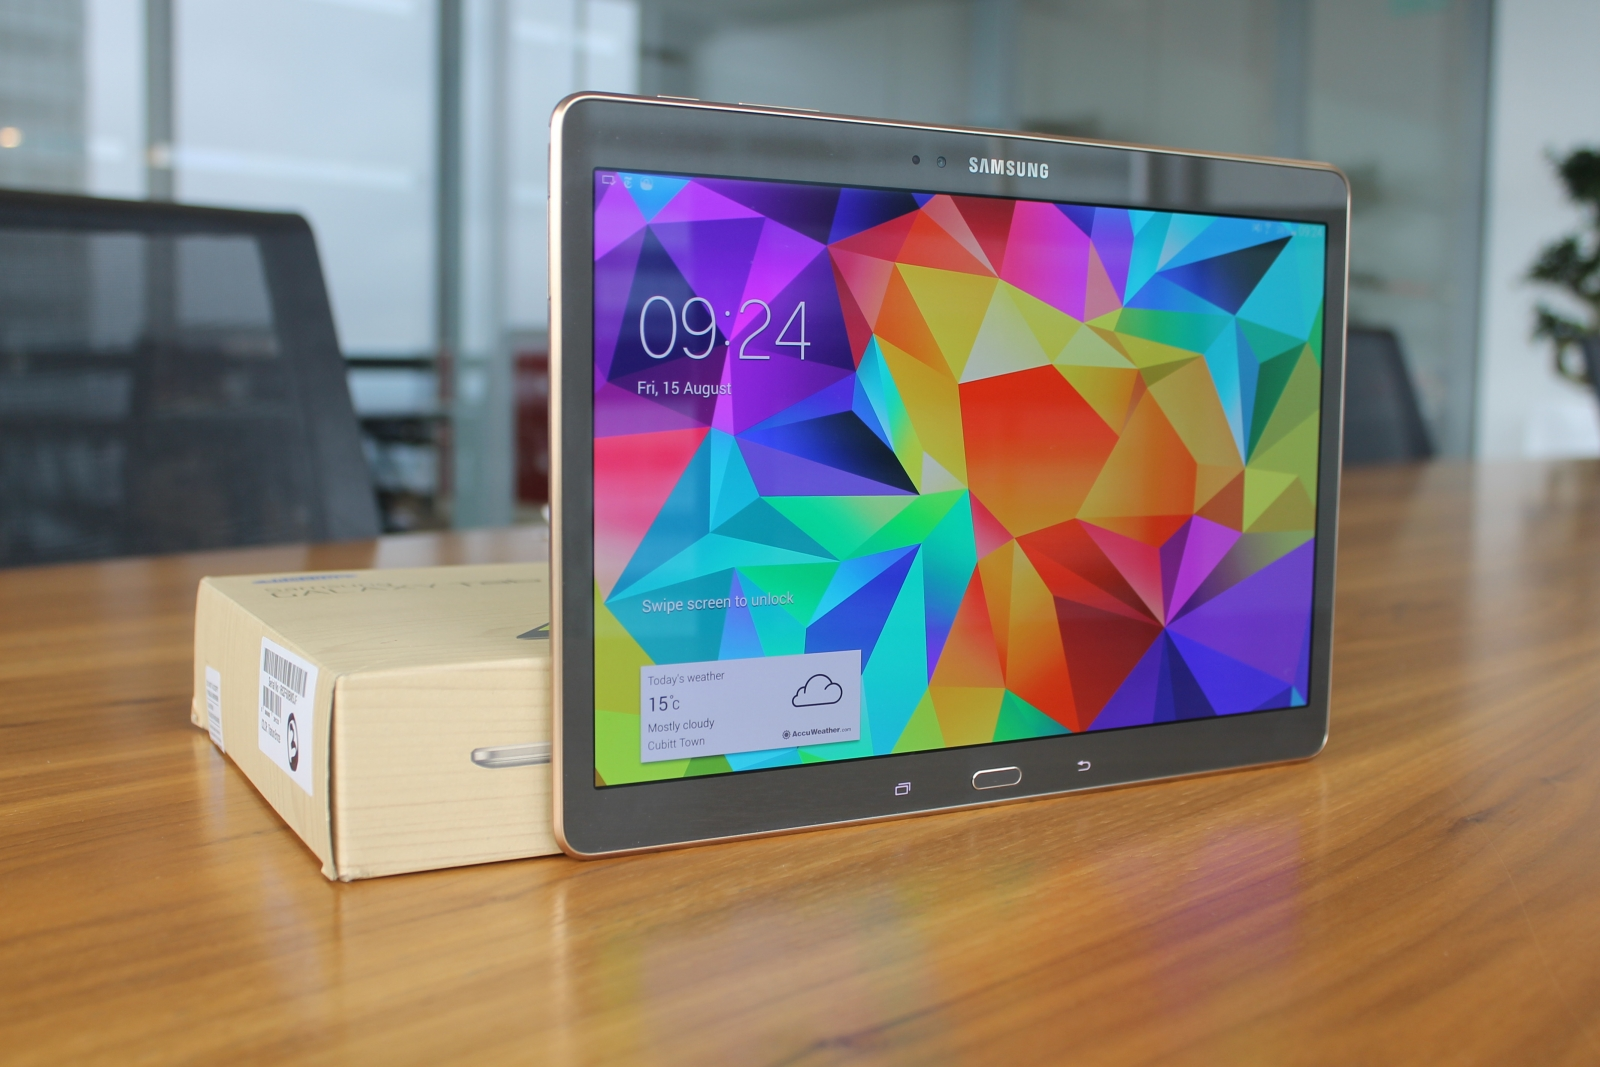 Samsung Galaxy Tab S 8.4 and Galaxy Tab S 10.5 now available at $100